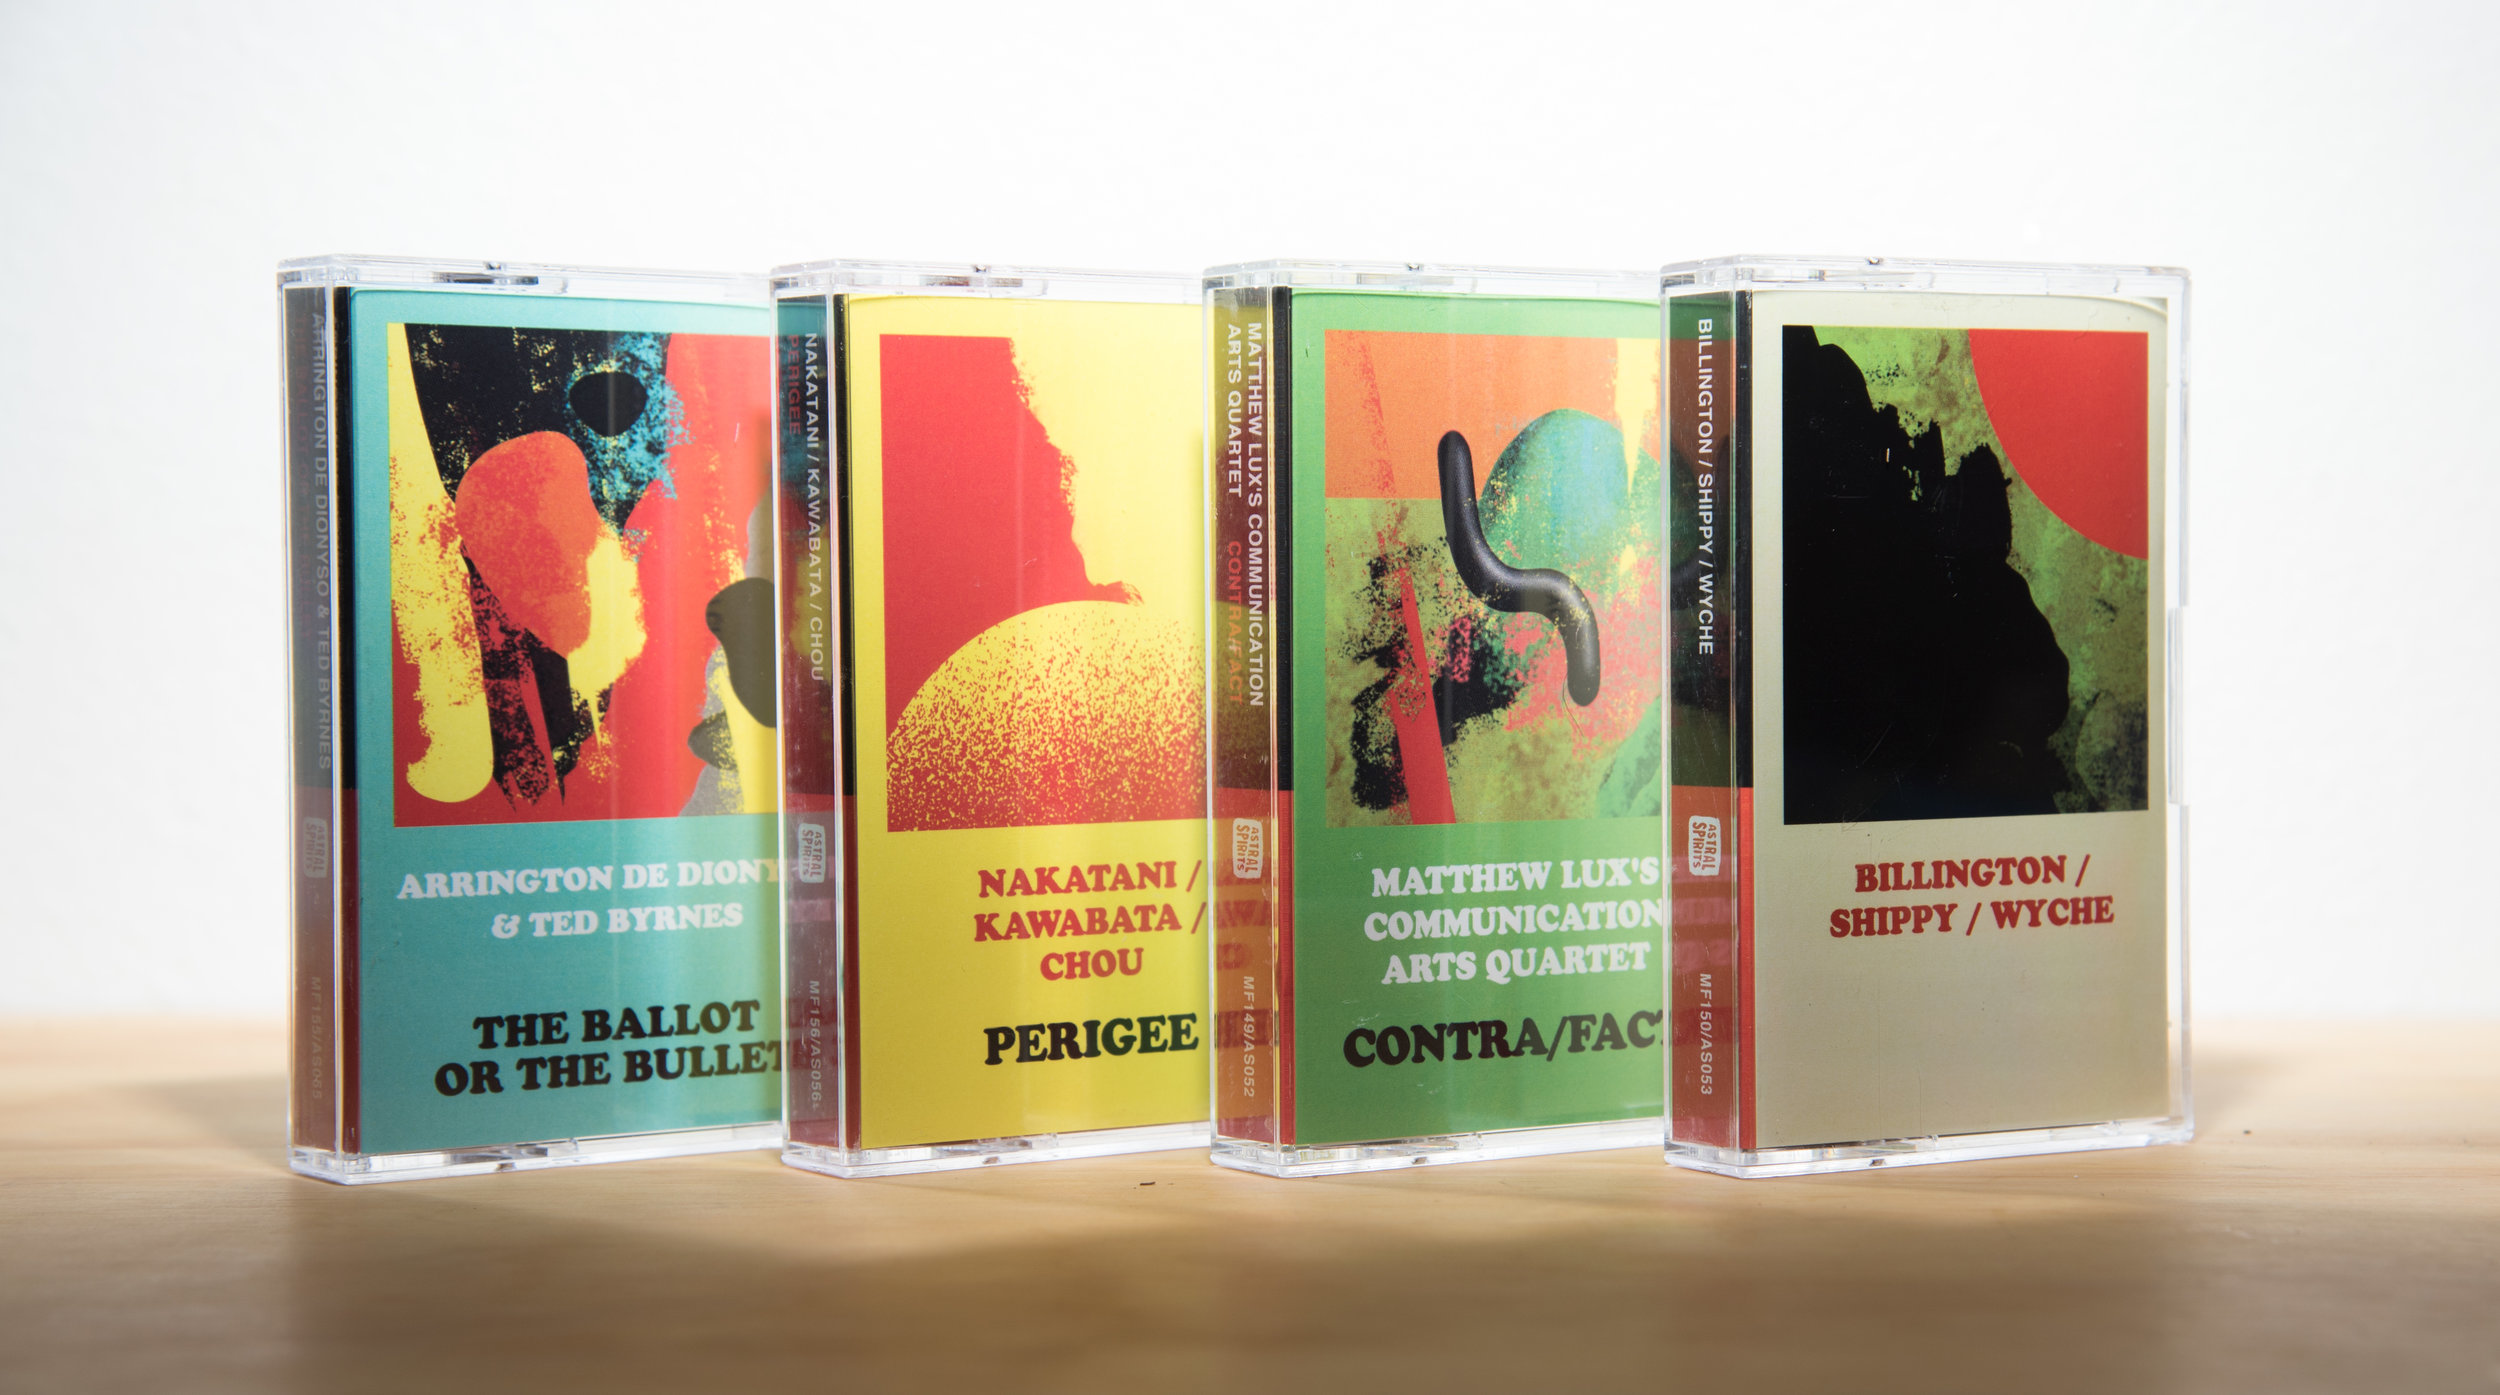 4 tapes in a row.jpg